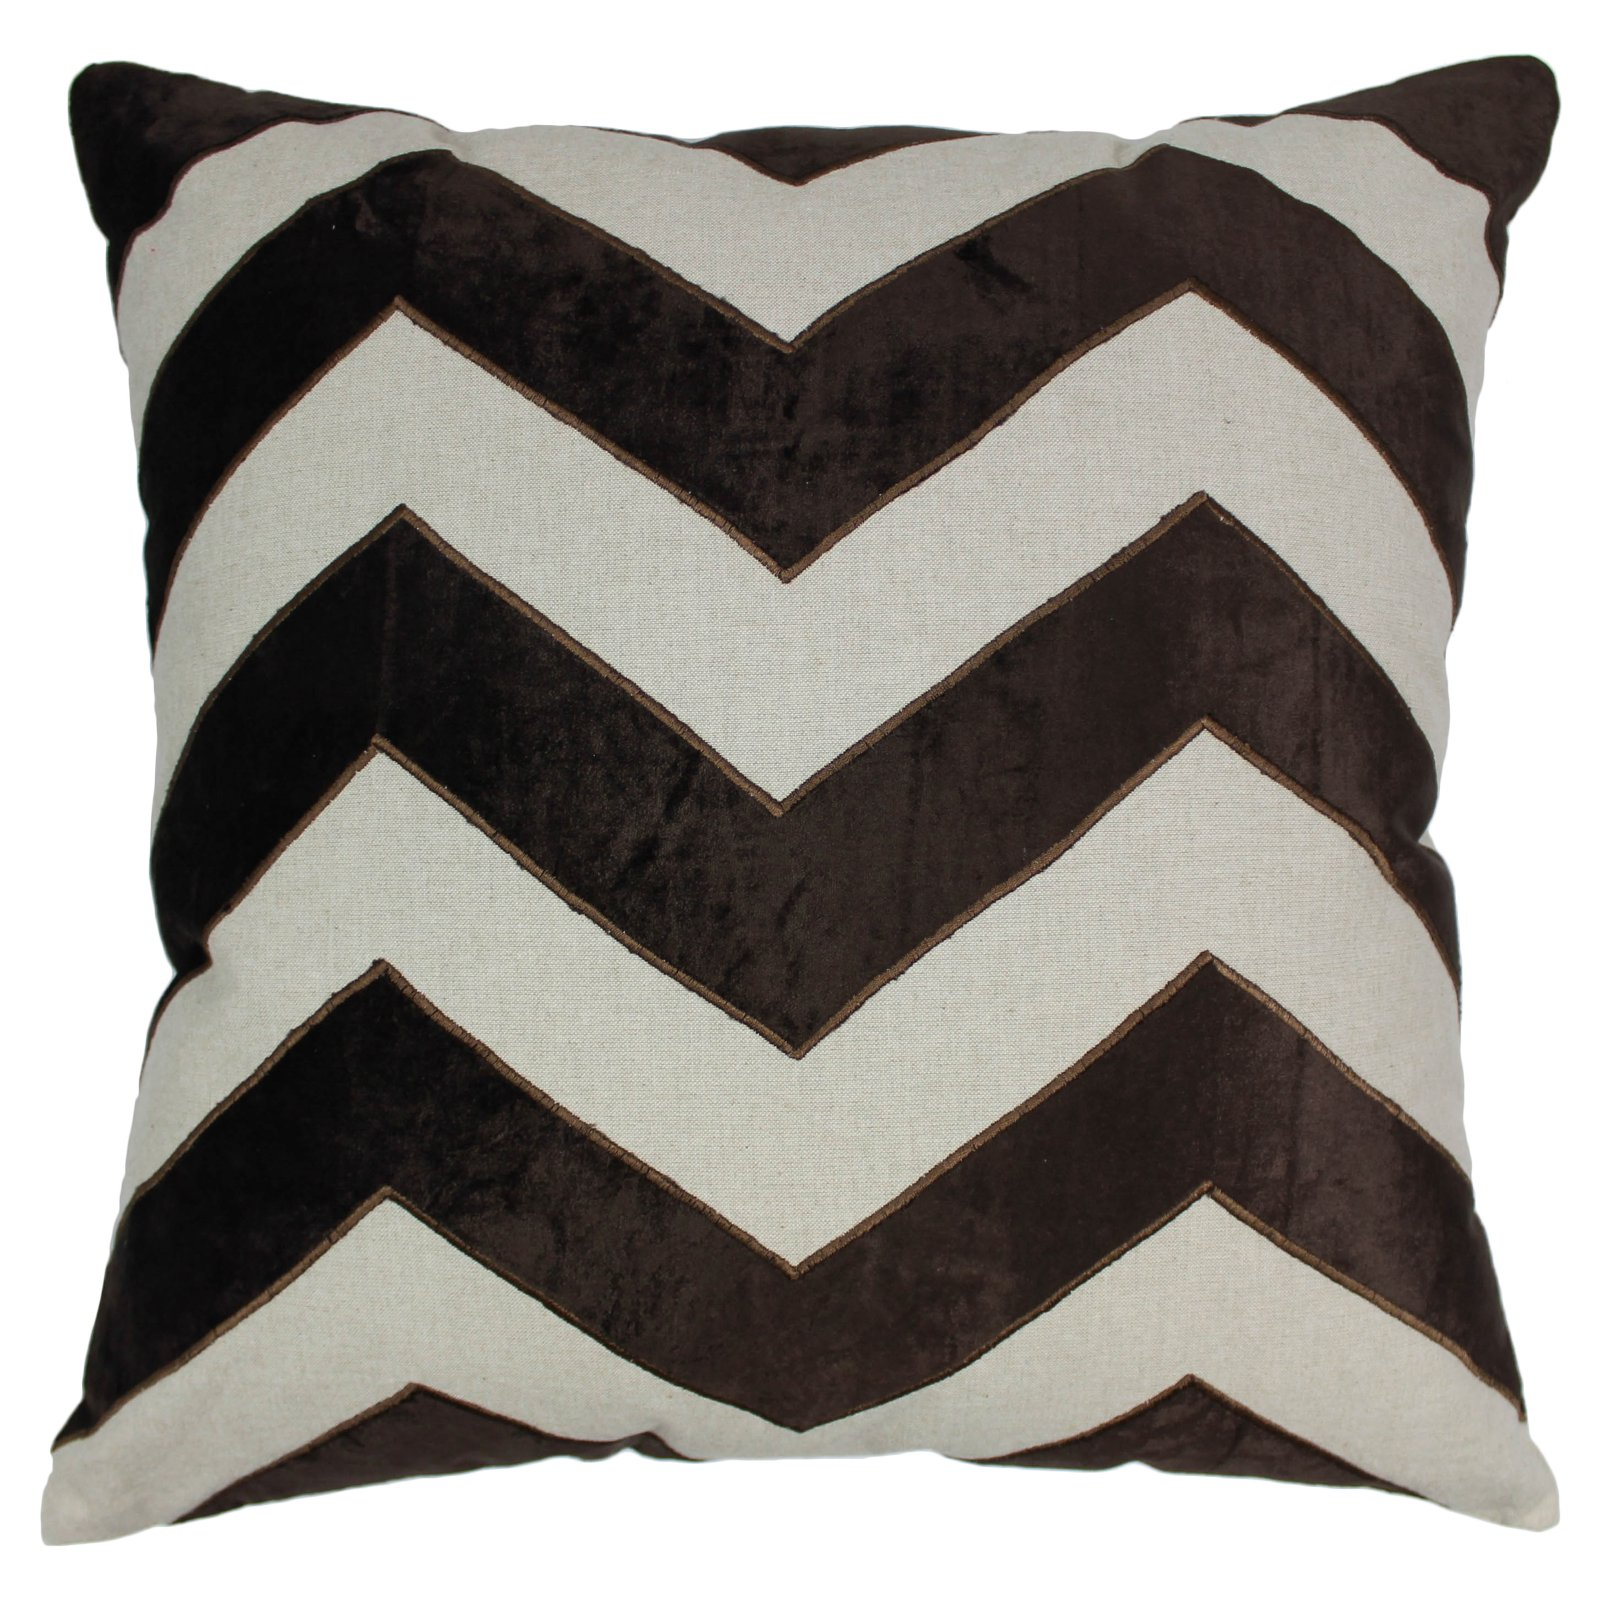 Blazing Needles 20 x 20 in. Indian Chevron Velvet Applique Throw Pillow